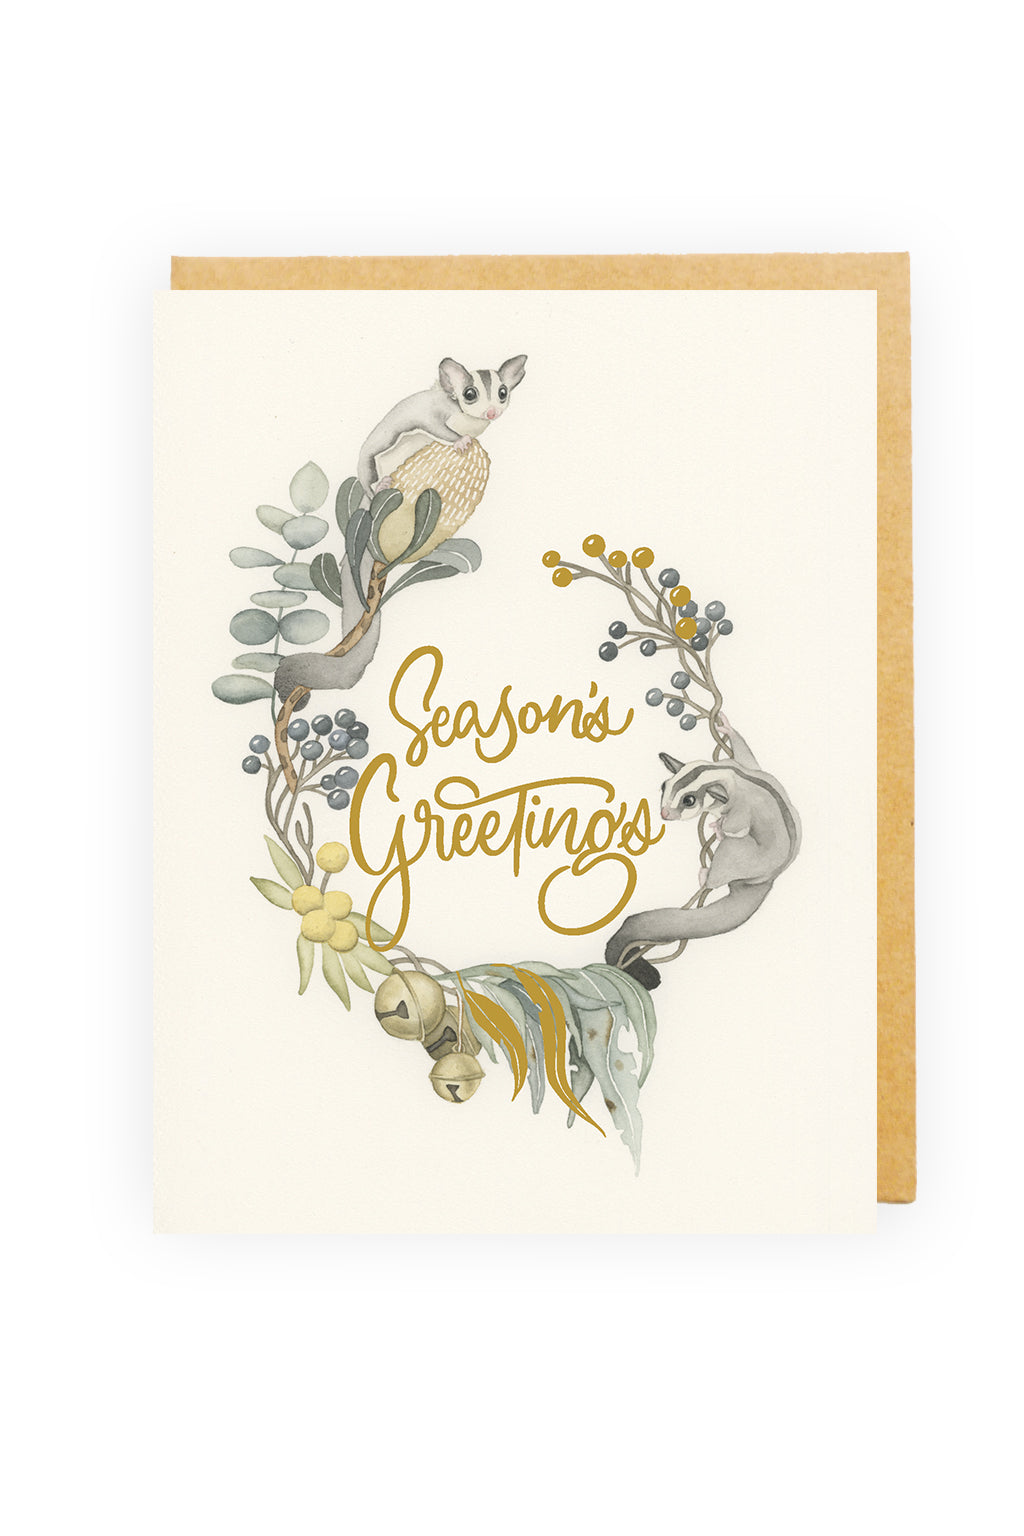 Squirrel Design Studio-Sweet Wreath - GOLD FOIL Christmas Card-Mott and Mulberry